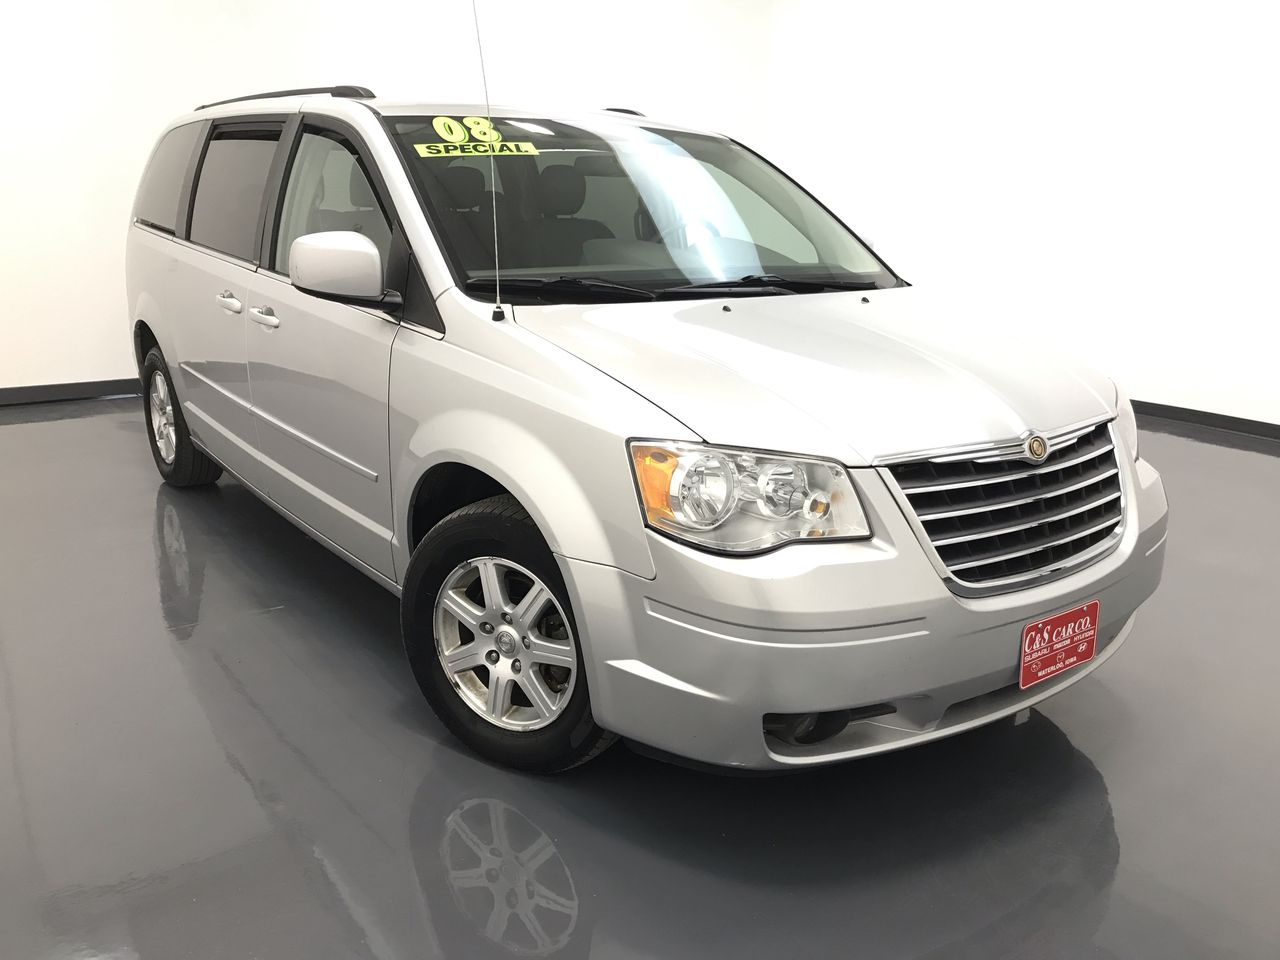 2008 Chrysler Town & Country  - C & S Car Company